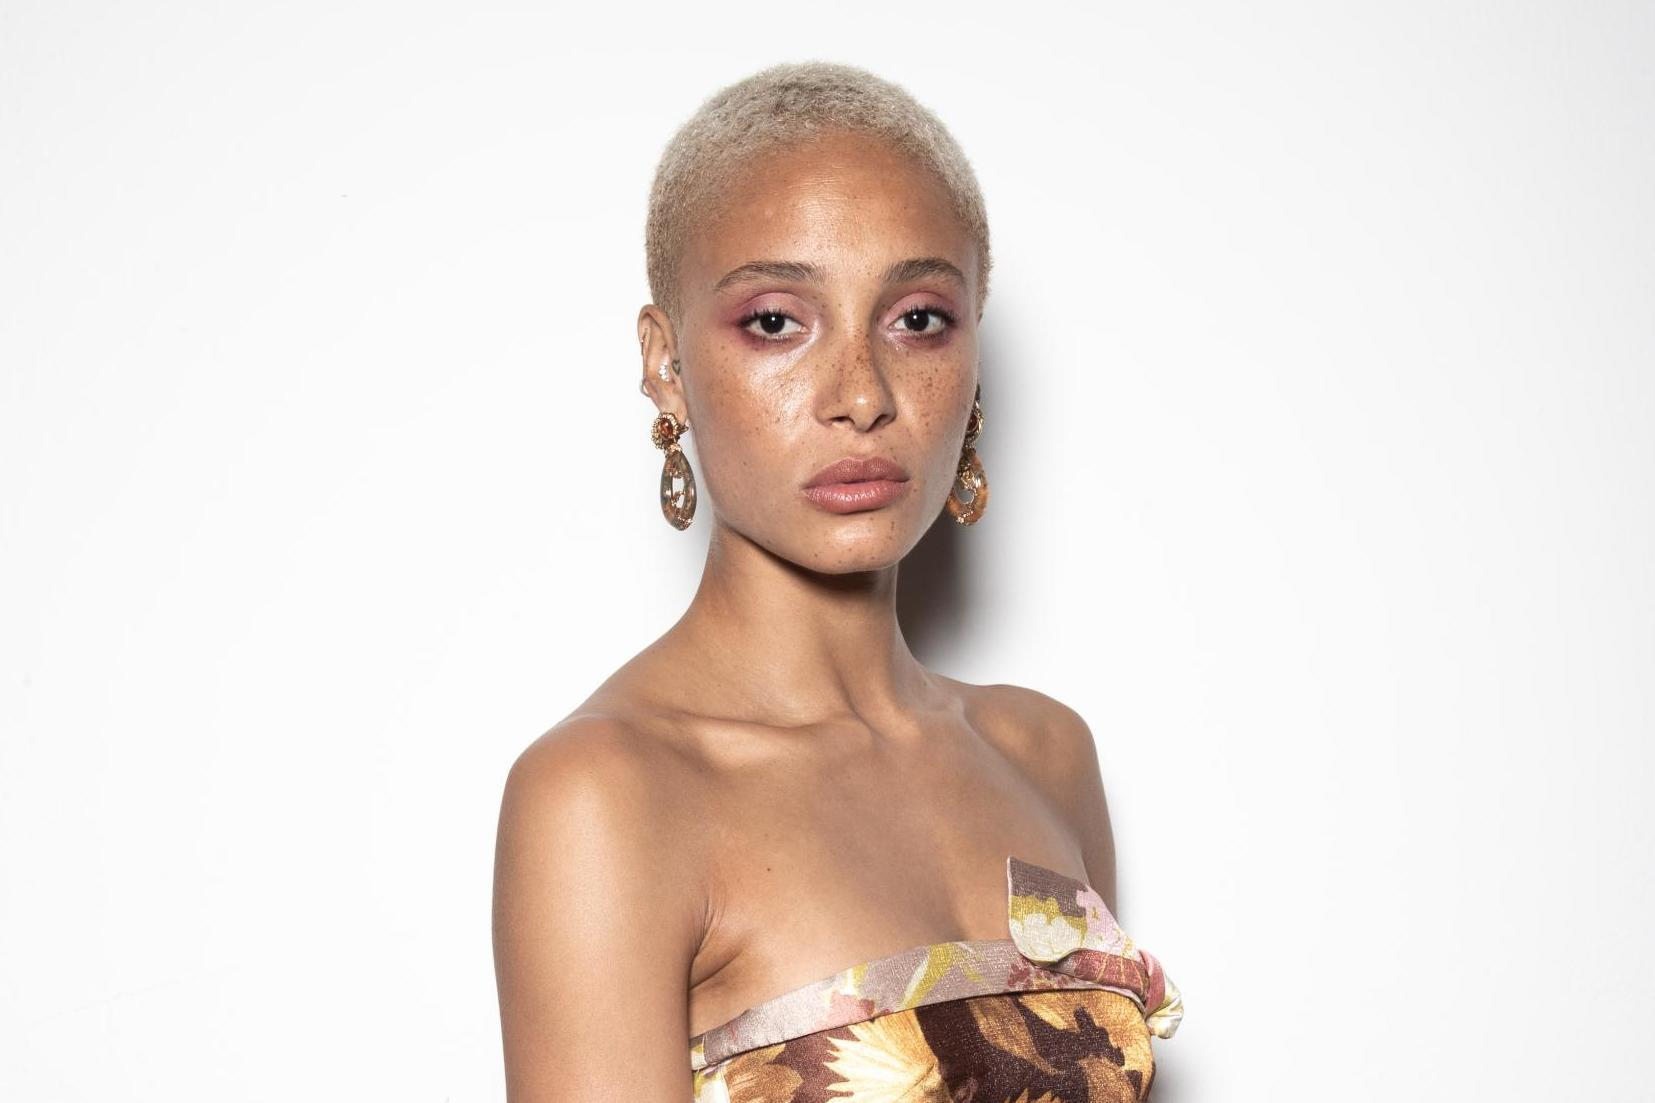 Adwoa Aboah - latest news, breaking stories and comment - The ...